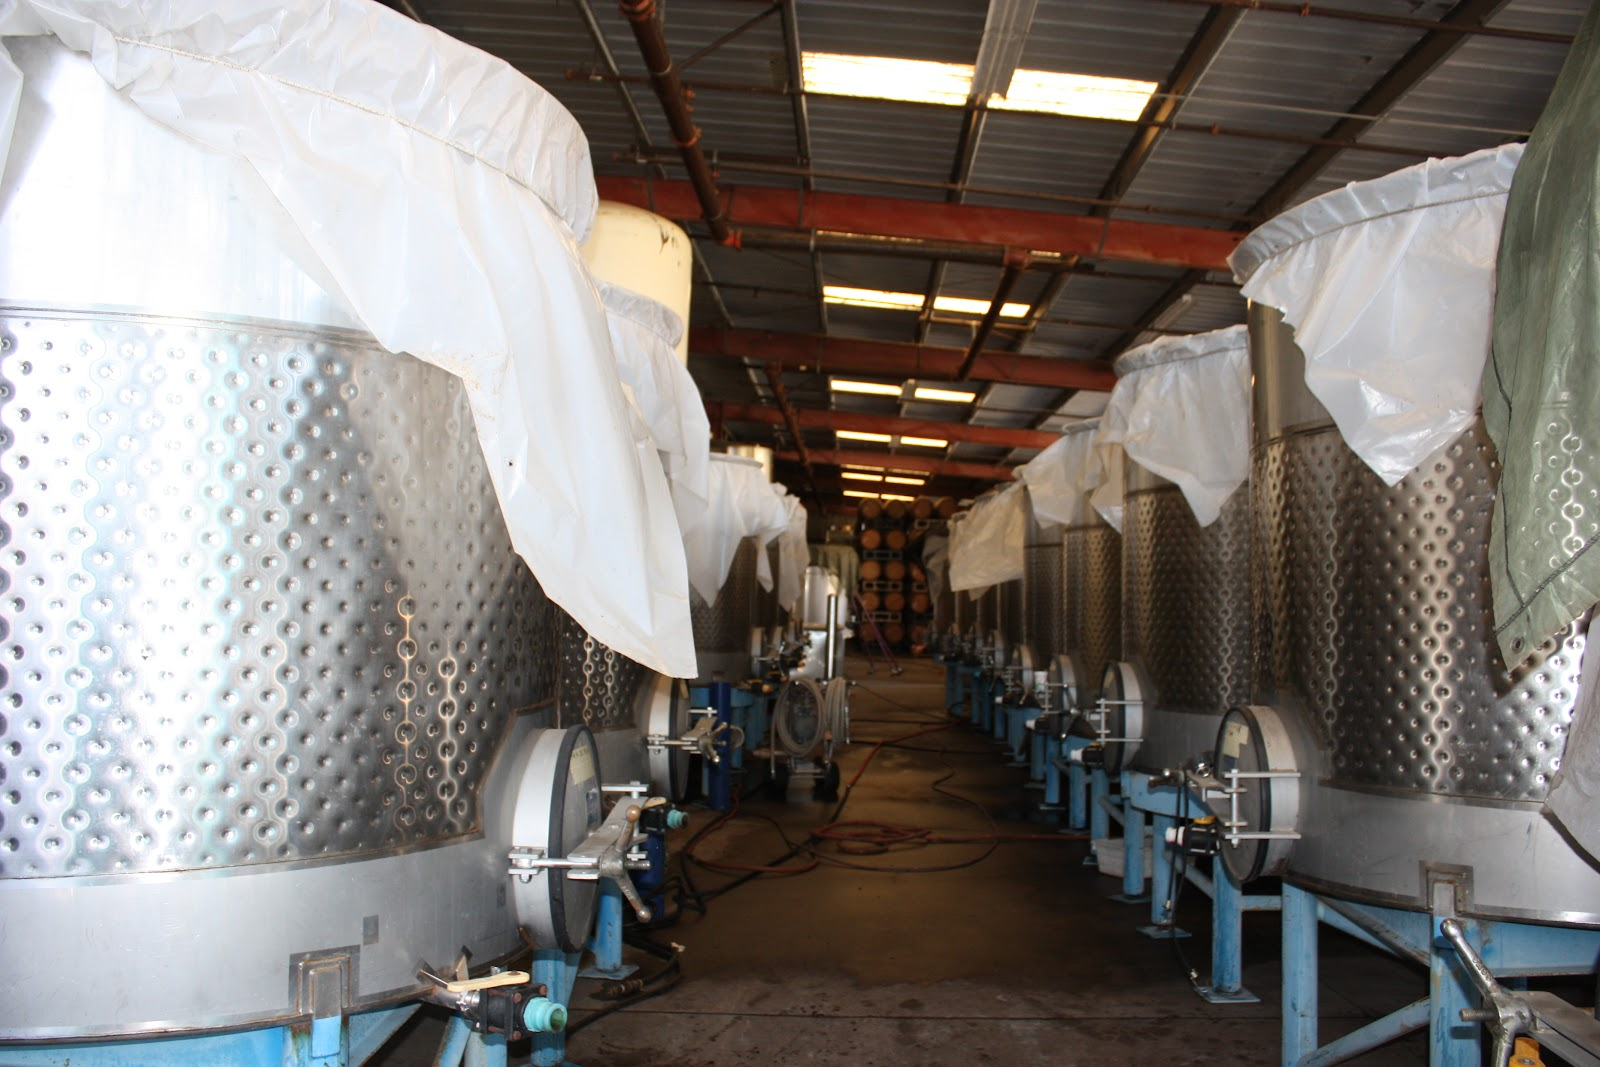 Fermentation tanks at Qupe